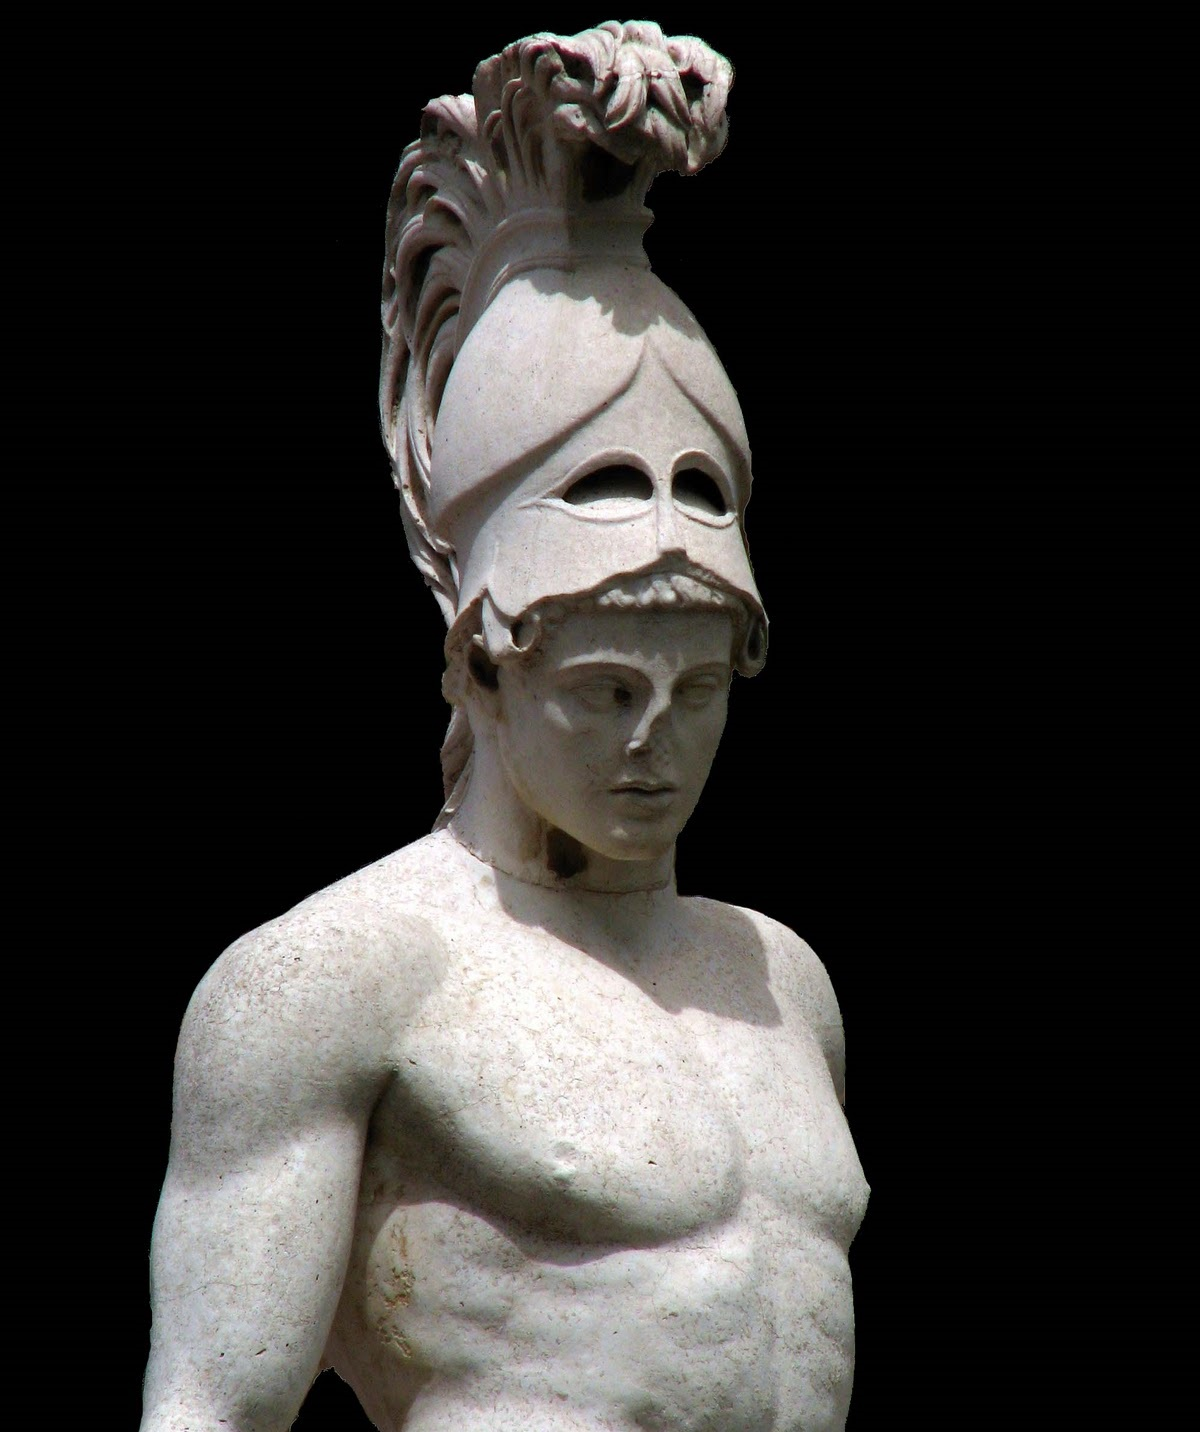 Ares (mythology)